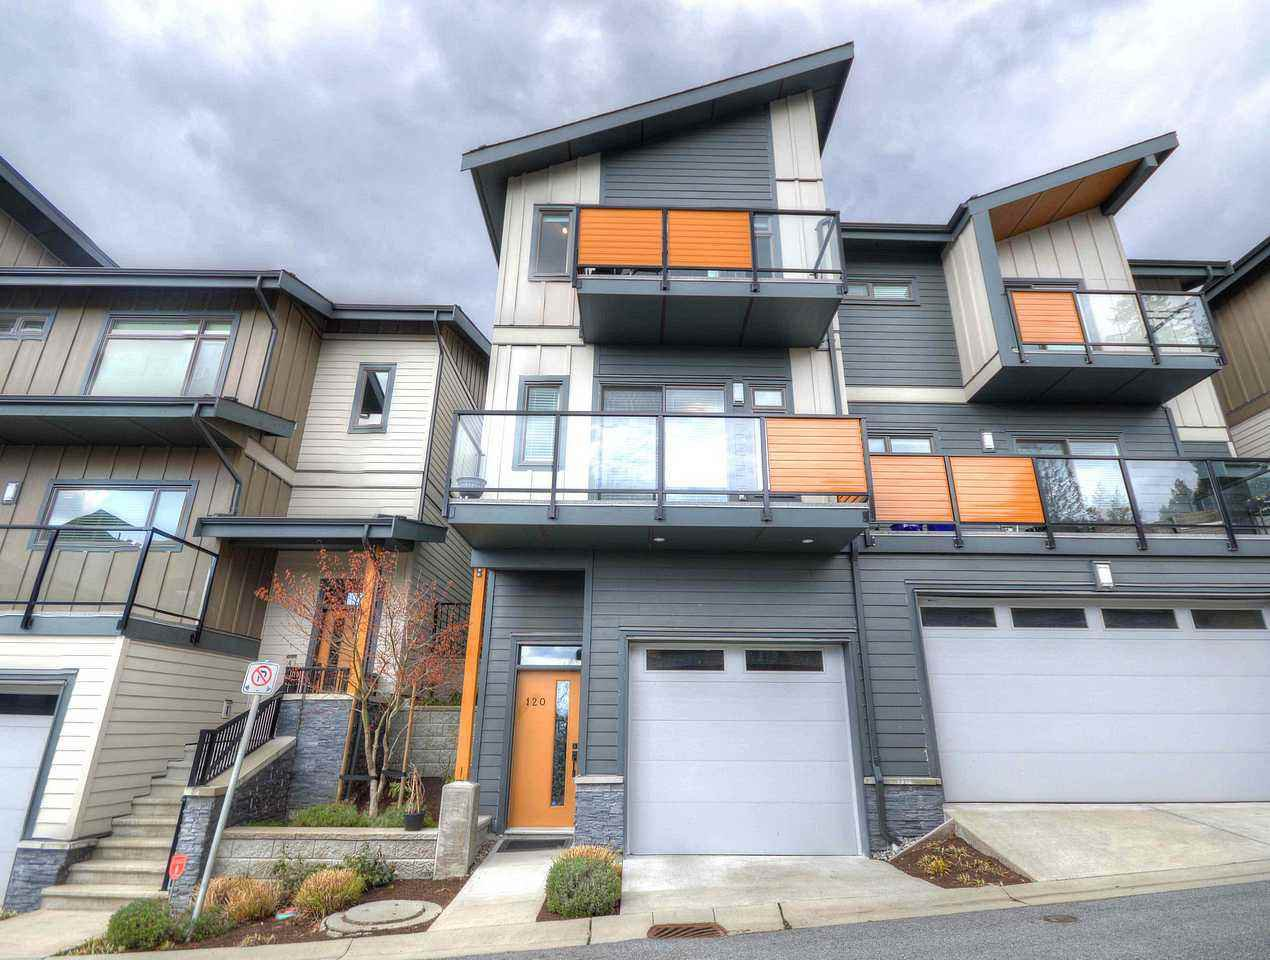 Main Photo: R2449274 - 120 - 3525 Chandler Street, Coquitlam Townhouse